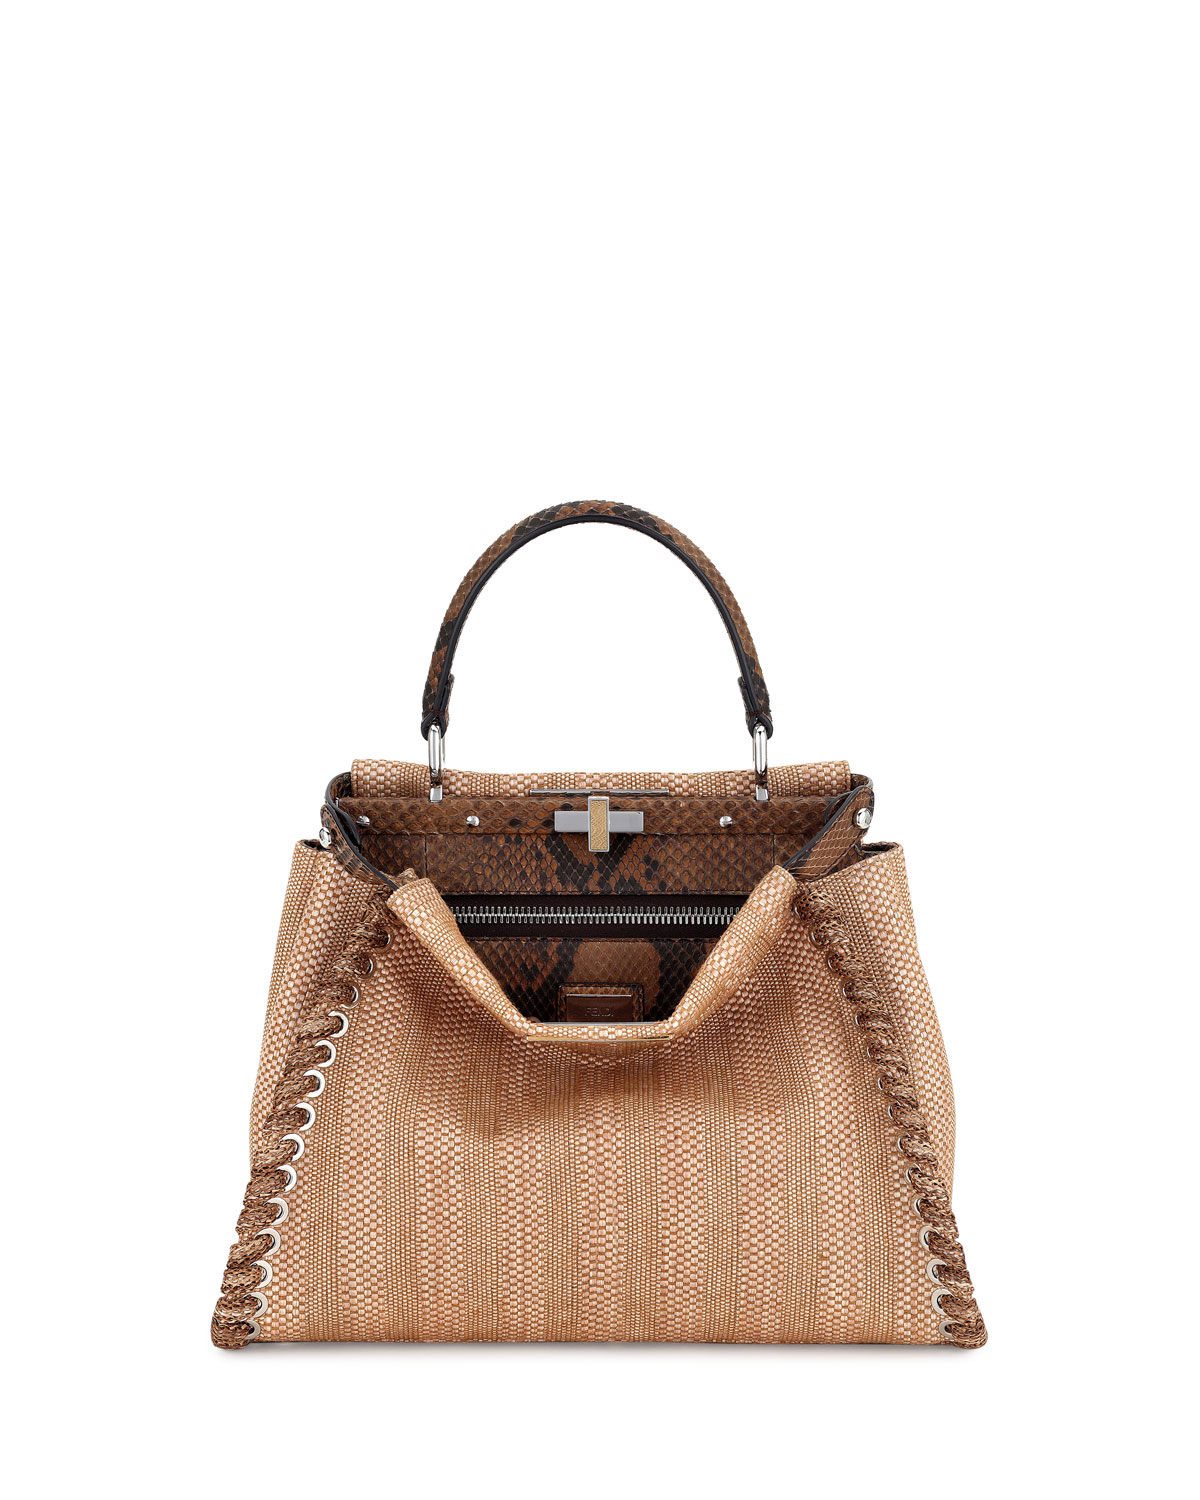 Fendi Peekaboo Medium Straw   Python Whipstitch Satchel Bag, Natural ... 2f3f097def2